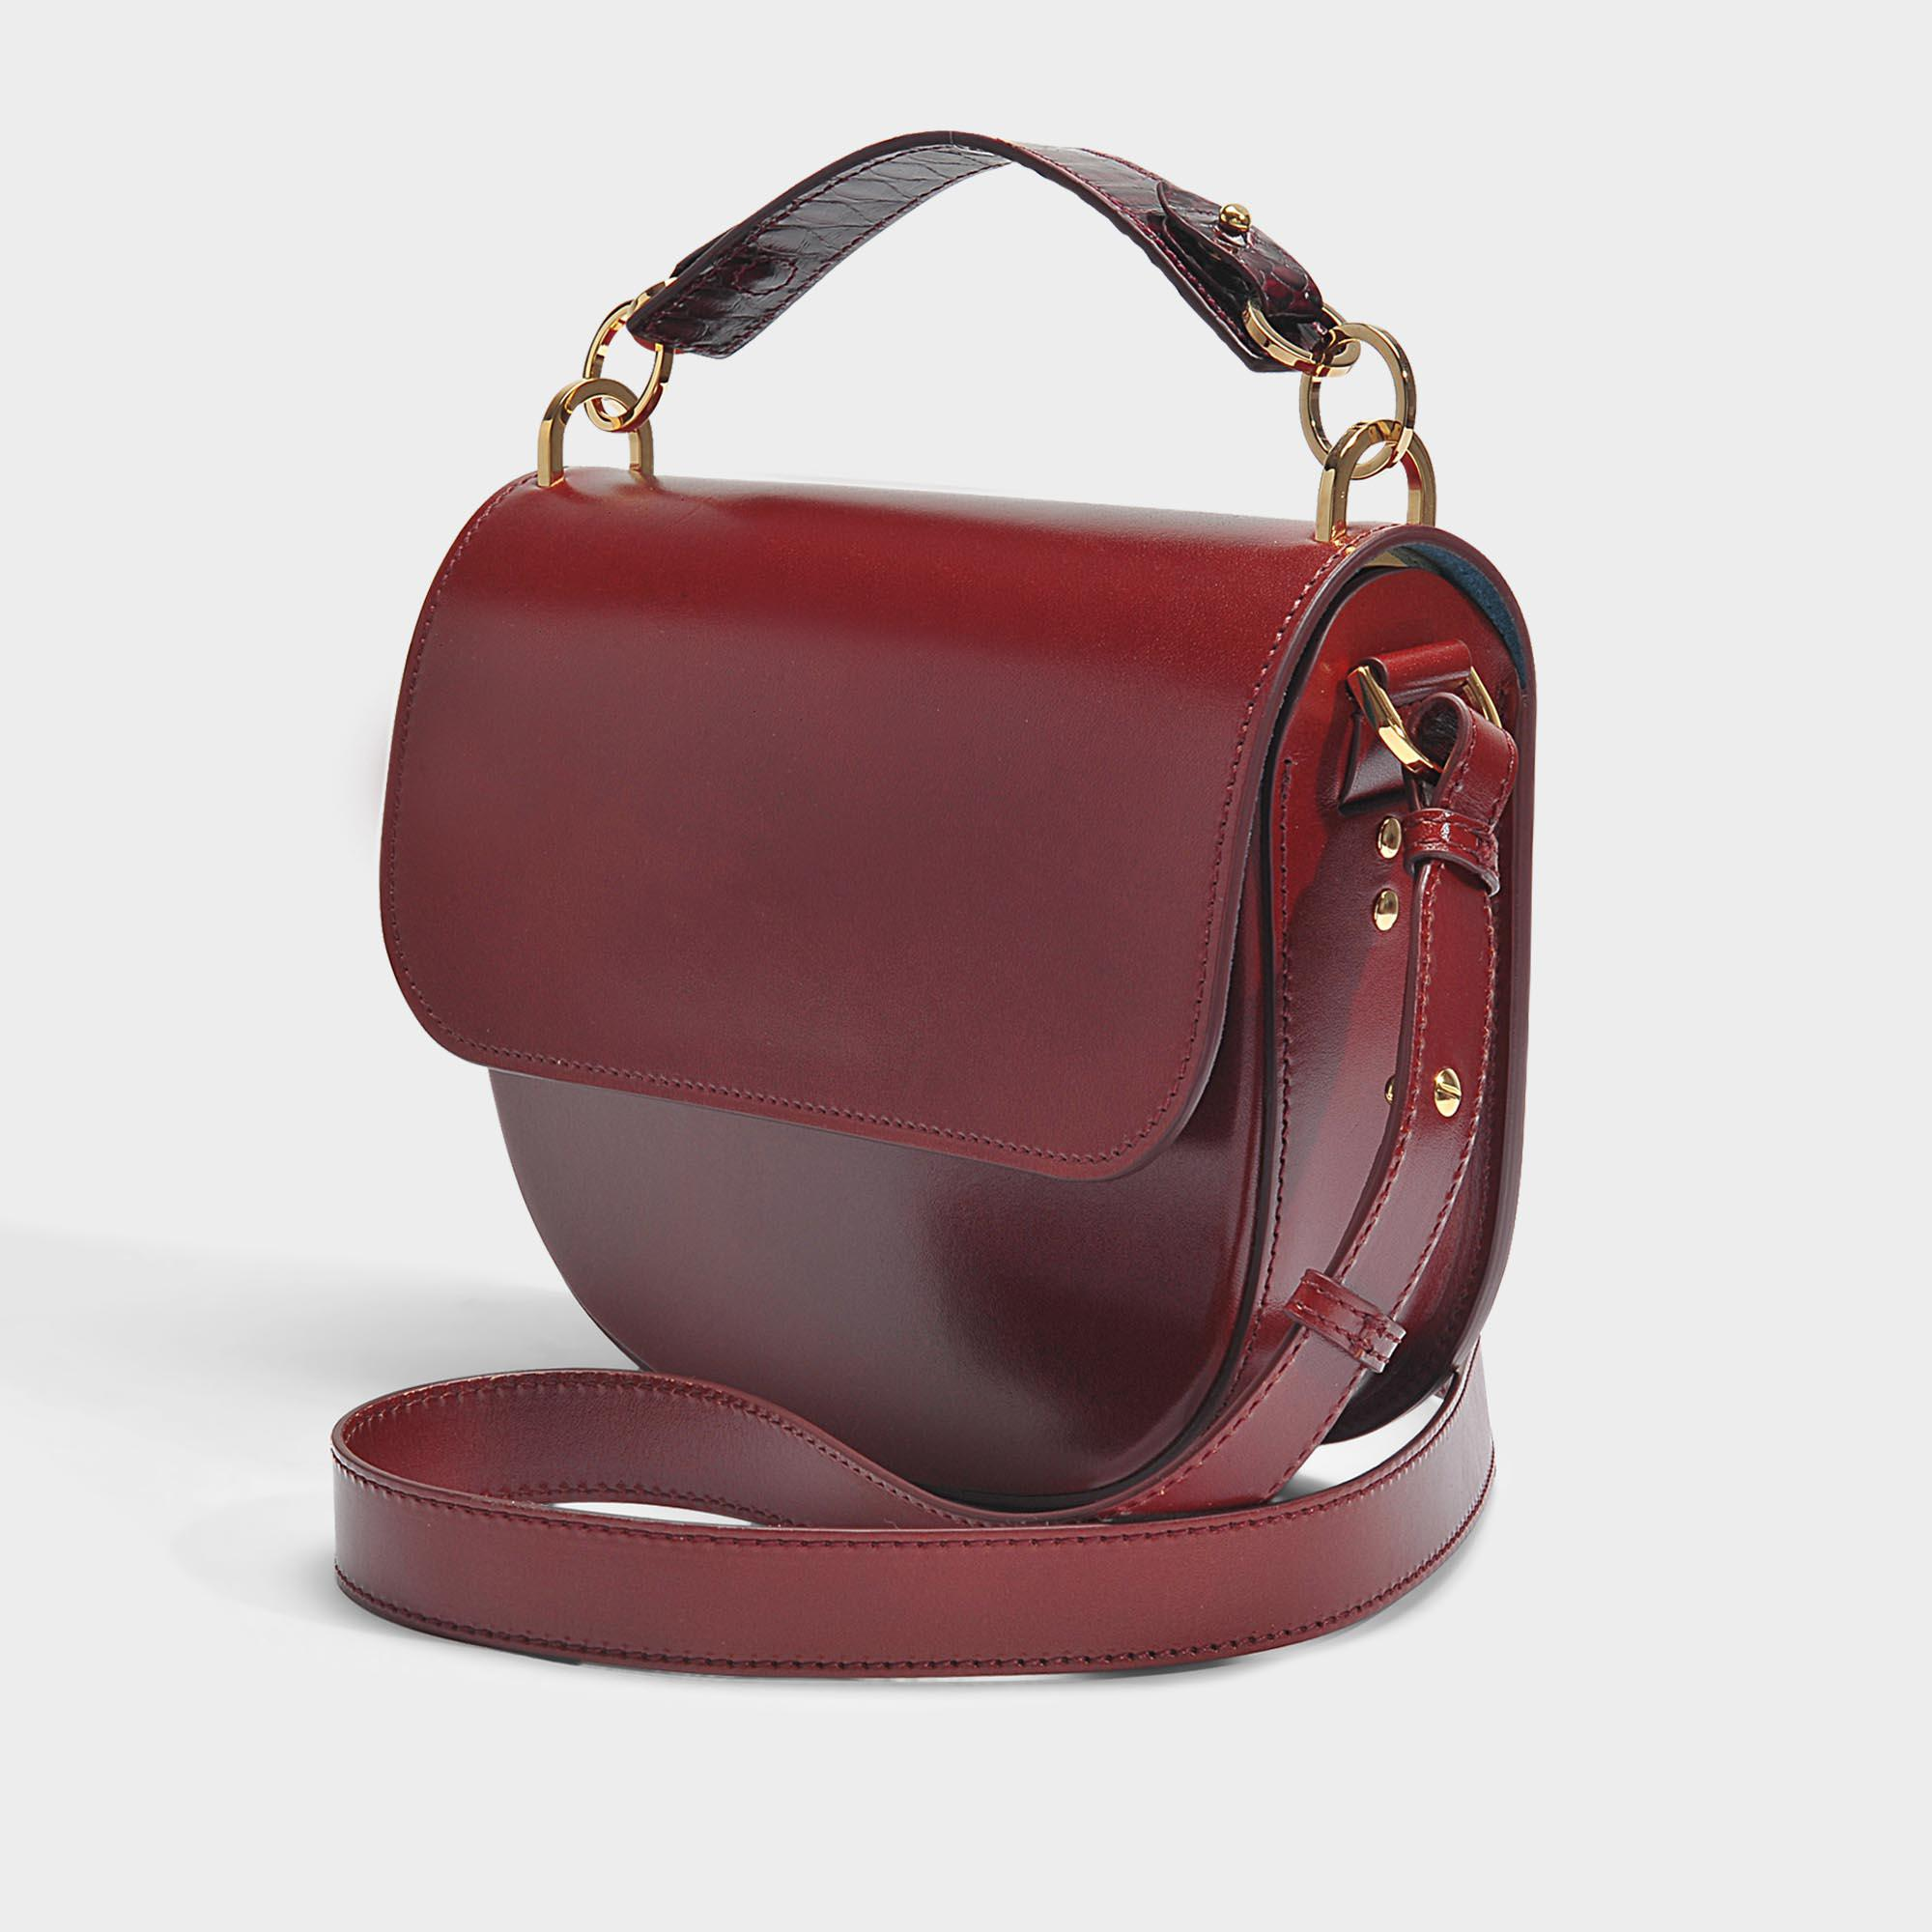 The Bow Bag in Brown and Burgundy Cow Leather and Python Sophie Hulme Free Shipping Cheap Price Free Shipping For Cheap Sale Ebay Best Seller Sale Online Buy Cheap 100% Original gWEP2ZX